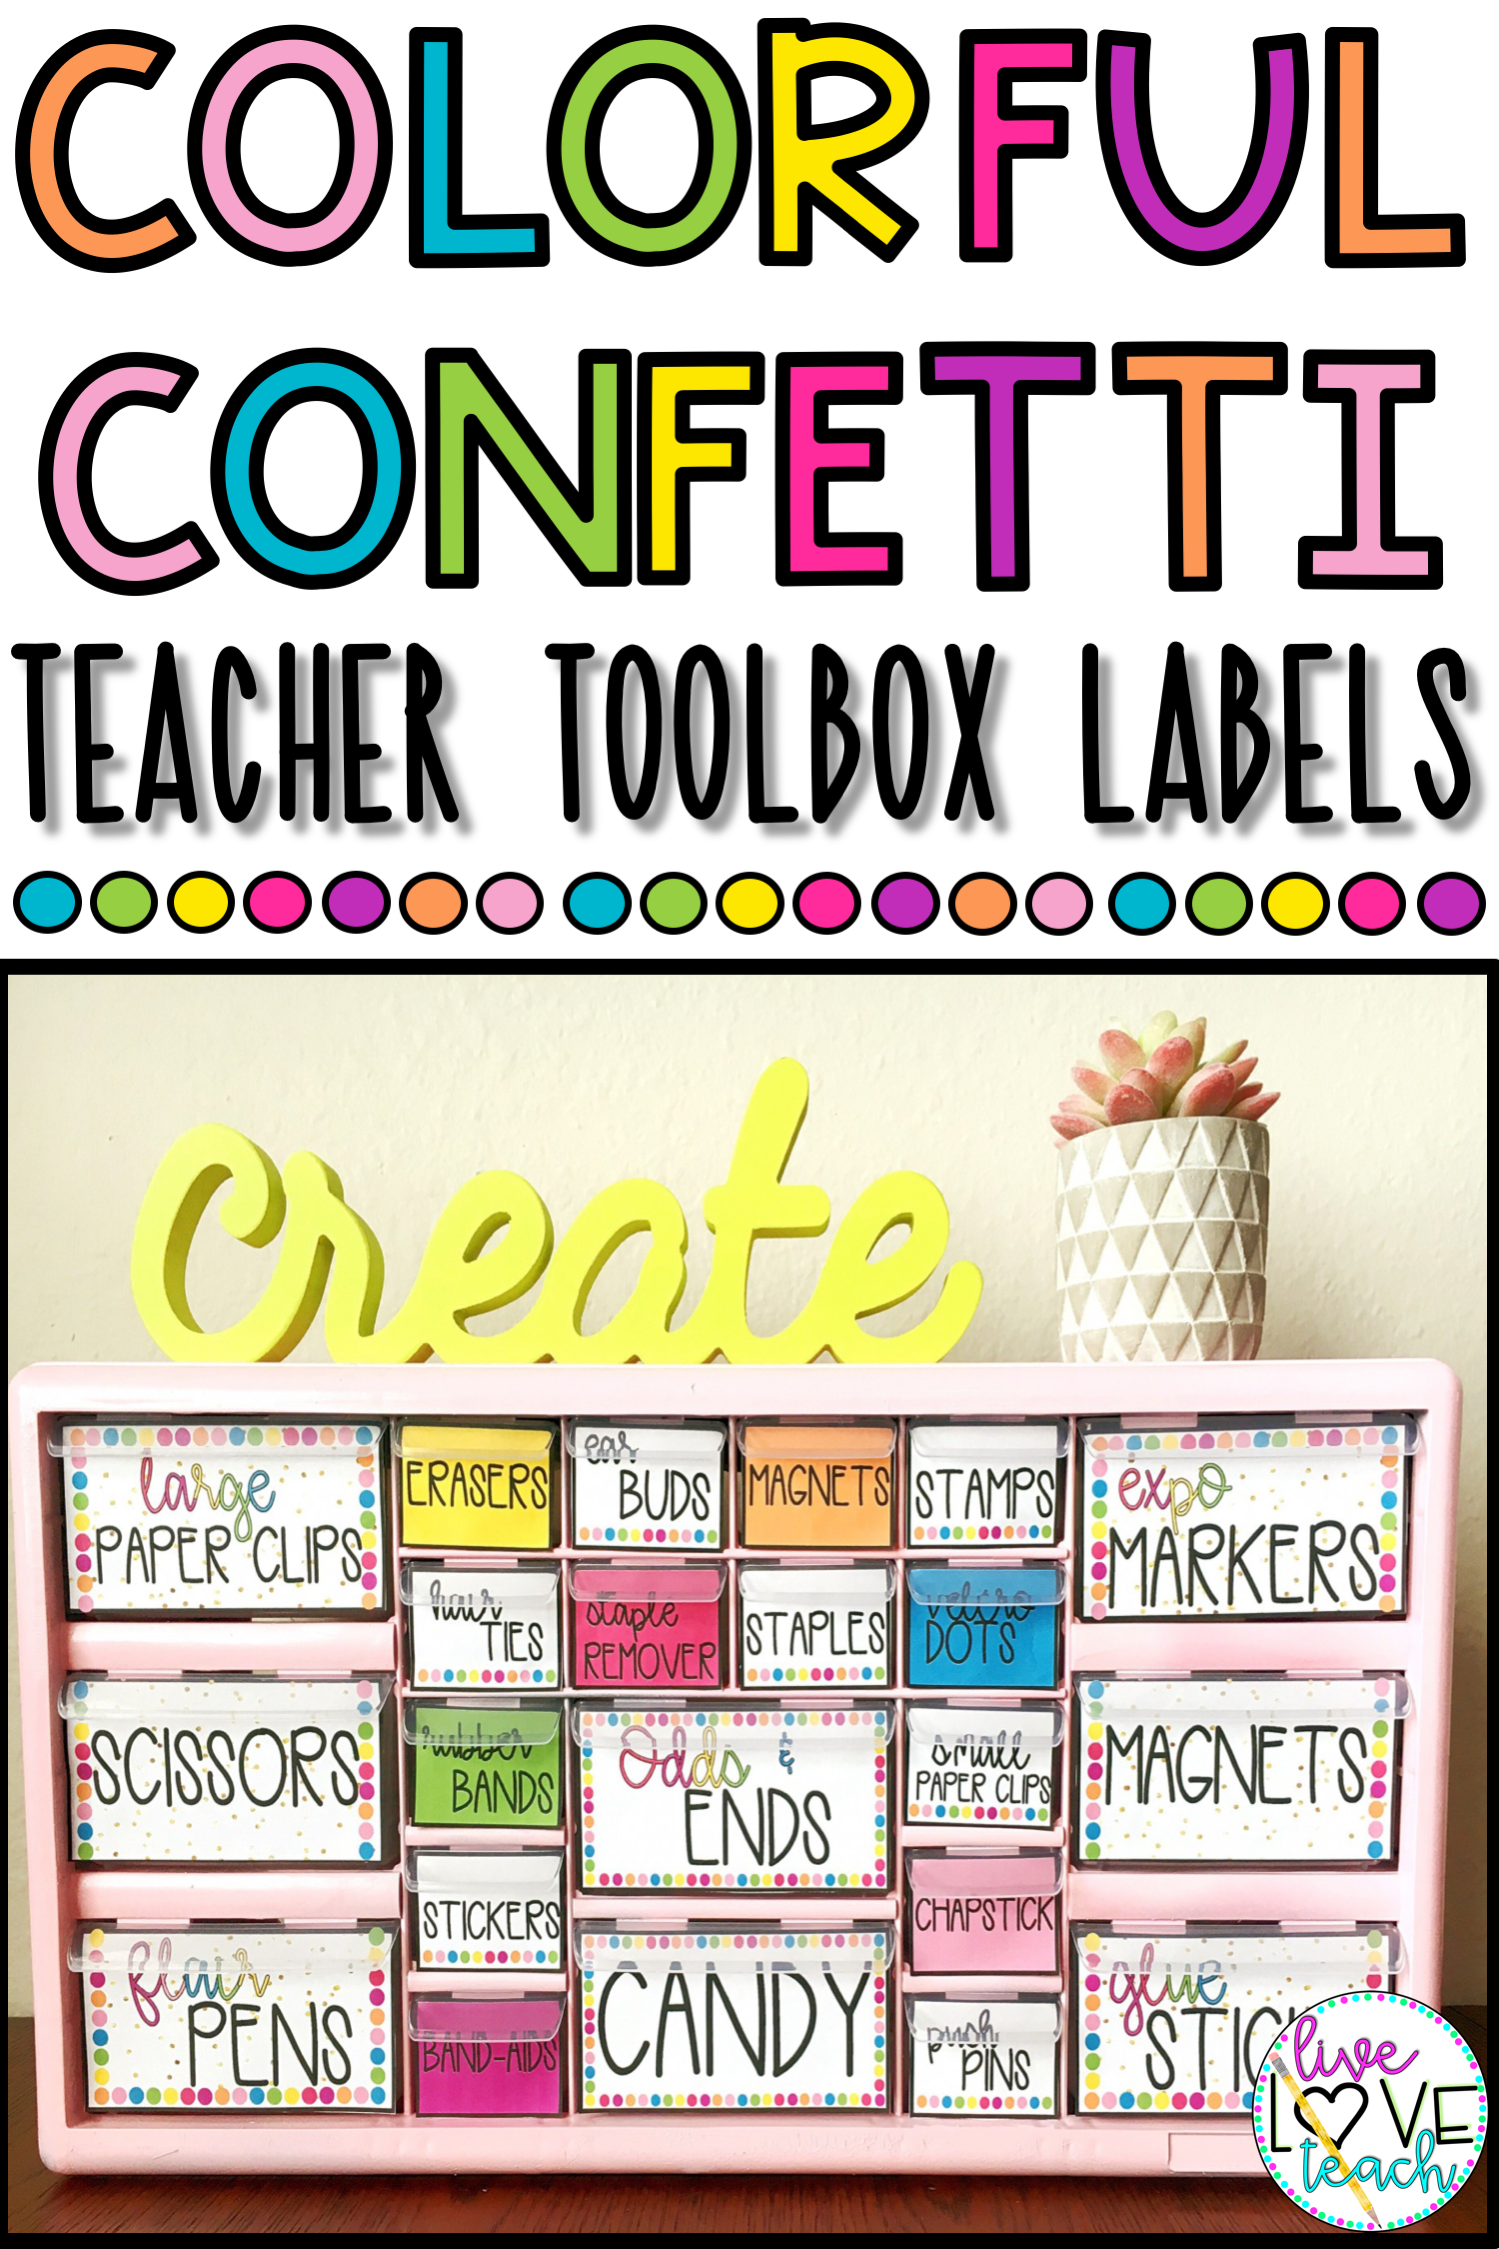 Editable Teacher Toolbox Labels Bright Colorful Confetti Teacher Toolbox Labels Teacher Toolbox Teachers Toolbox